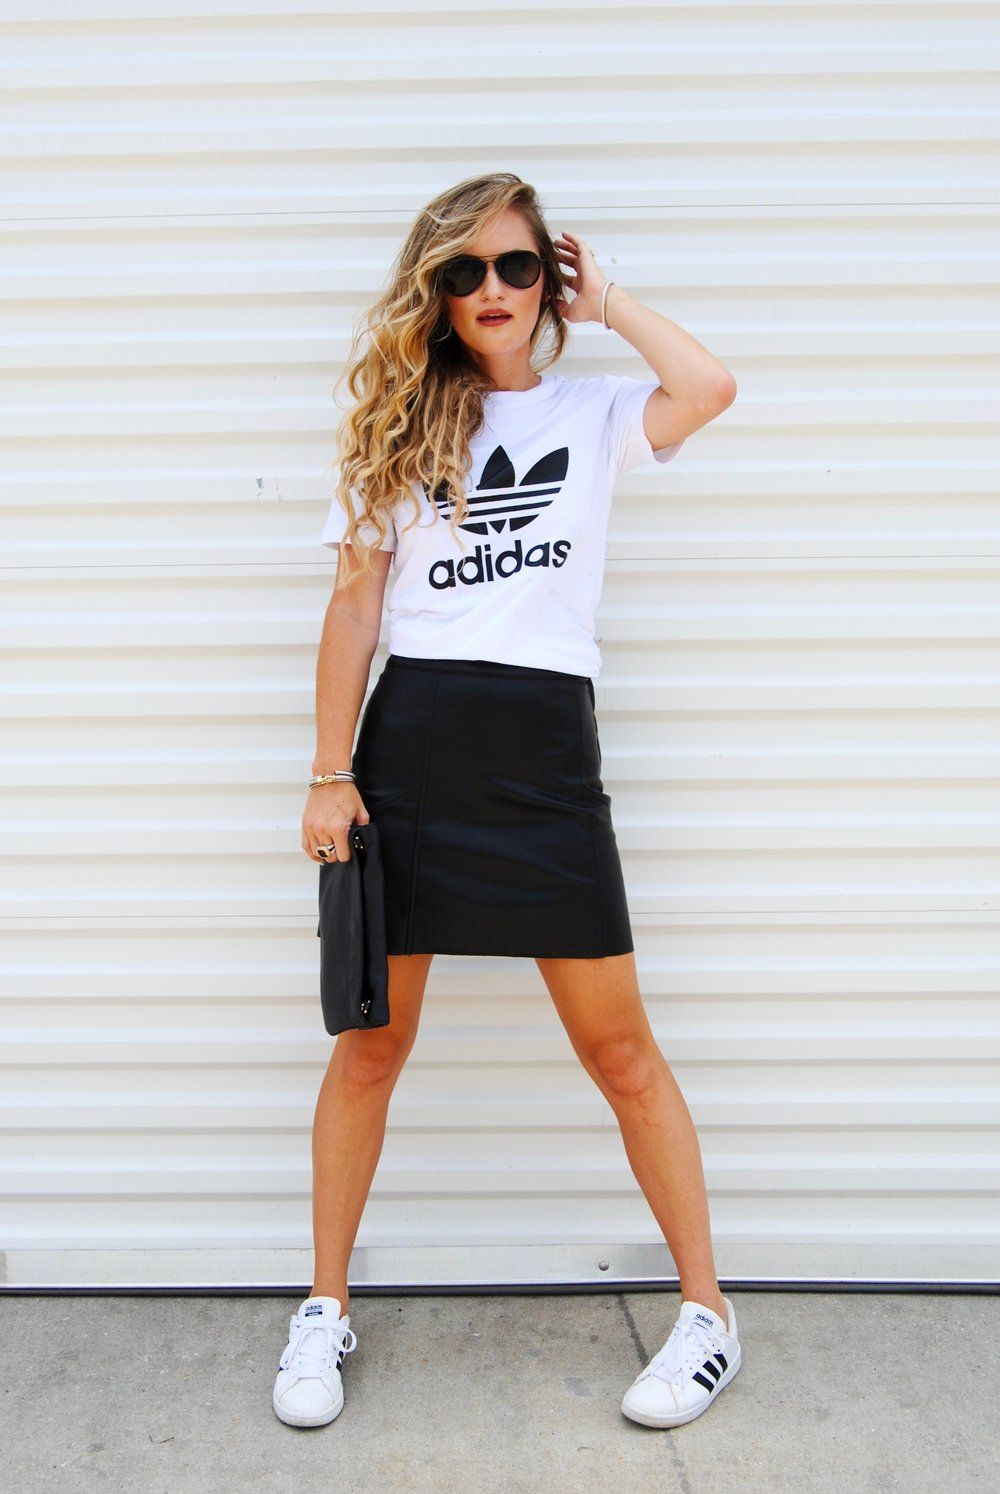 A New Way To Wear An Old Shoe Morrell S Armoire Adidas Outfit Women Dresses With Tennis Shoes Tennis Dress Outfit [ 1494 x 1000 Pixel ]